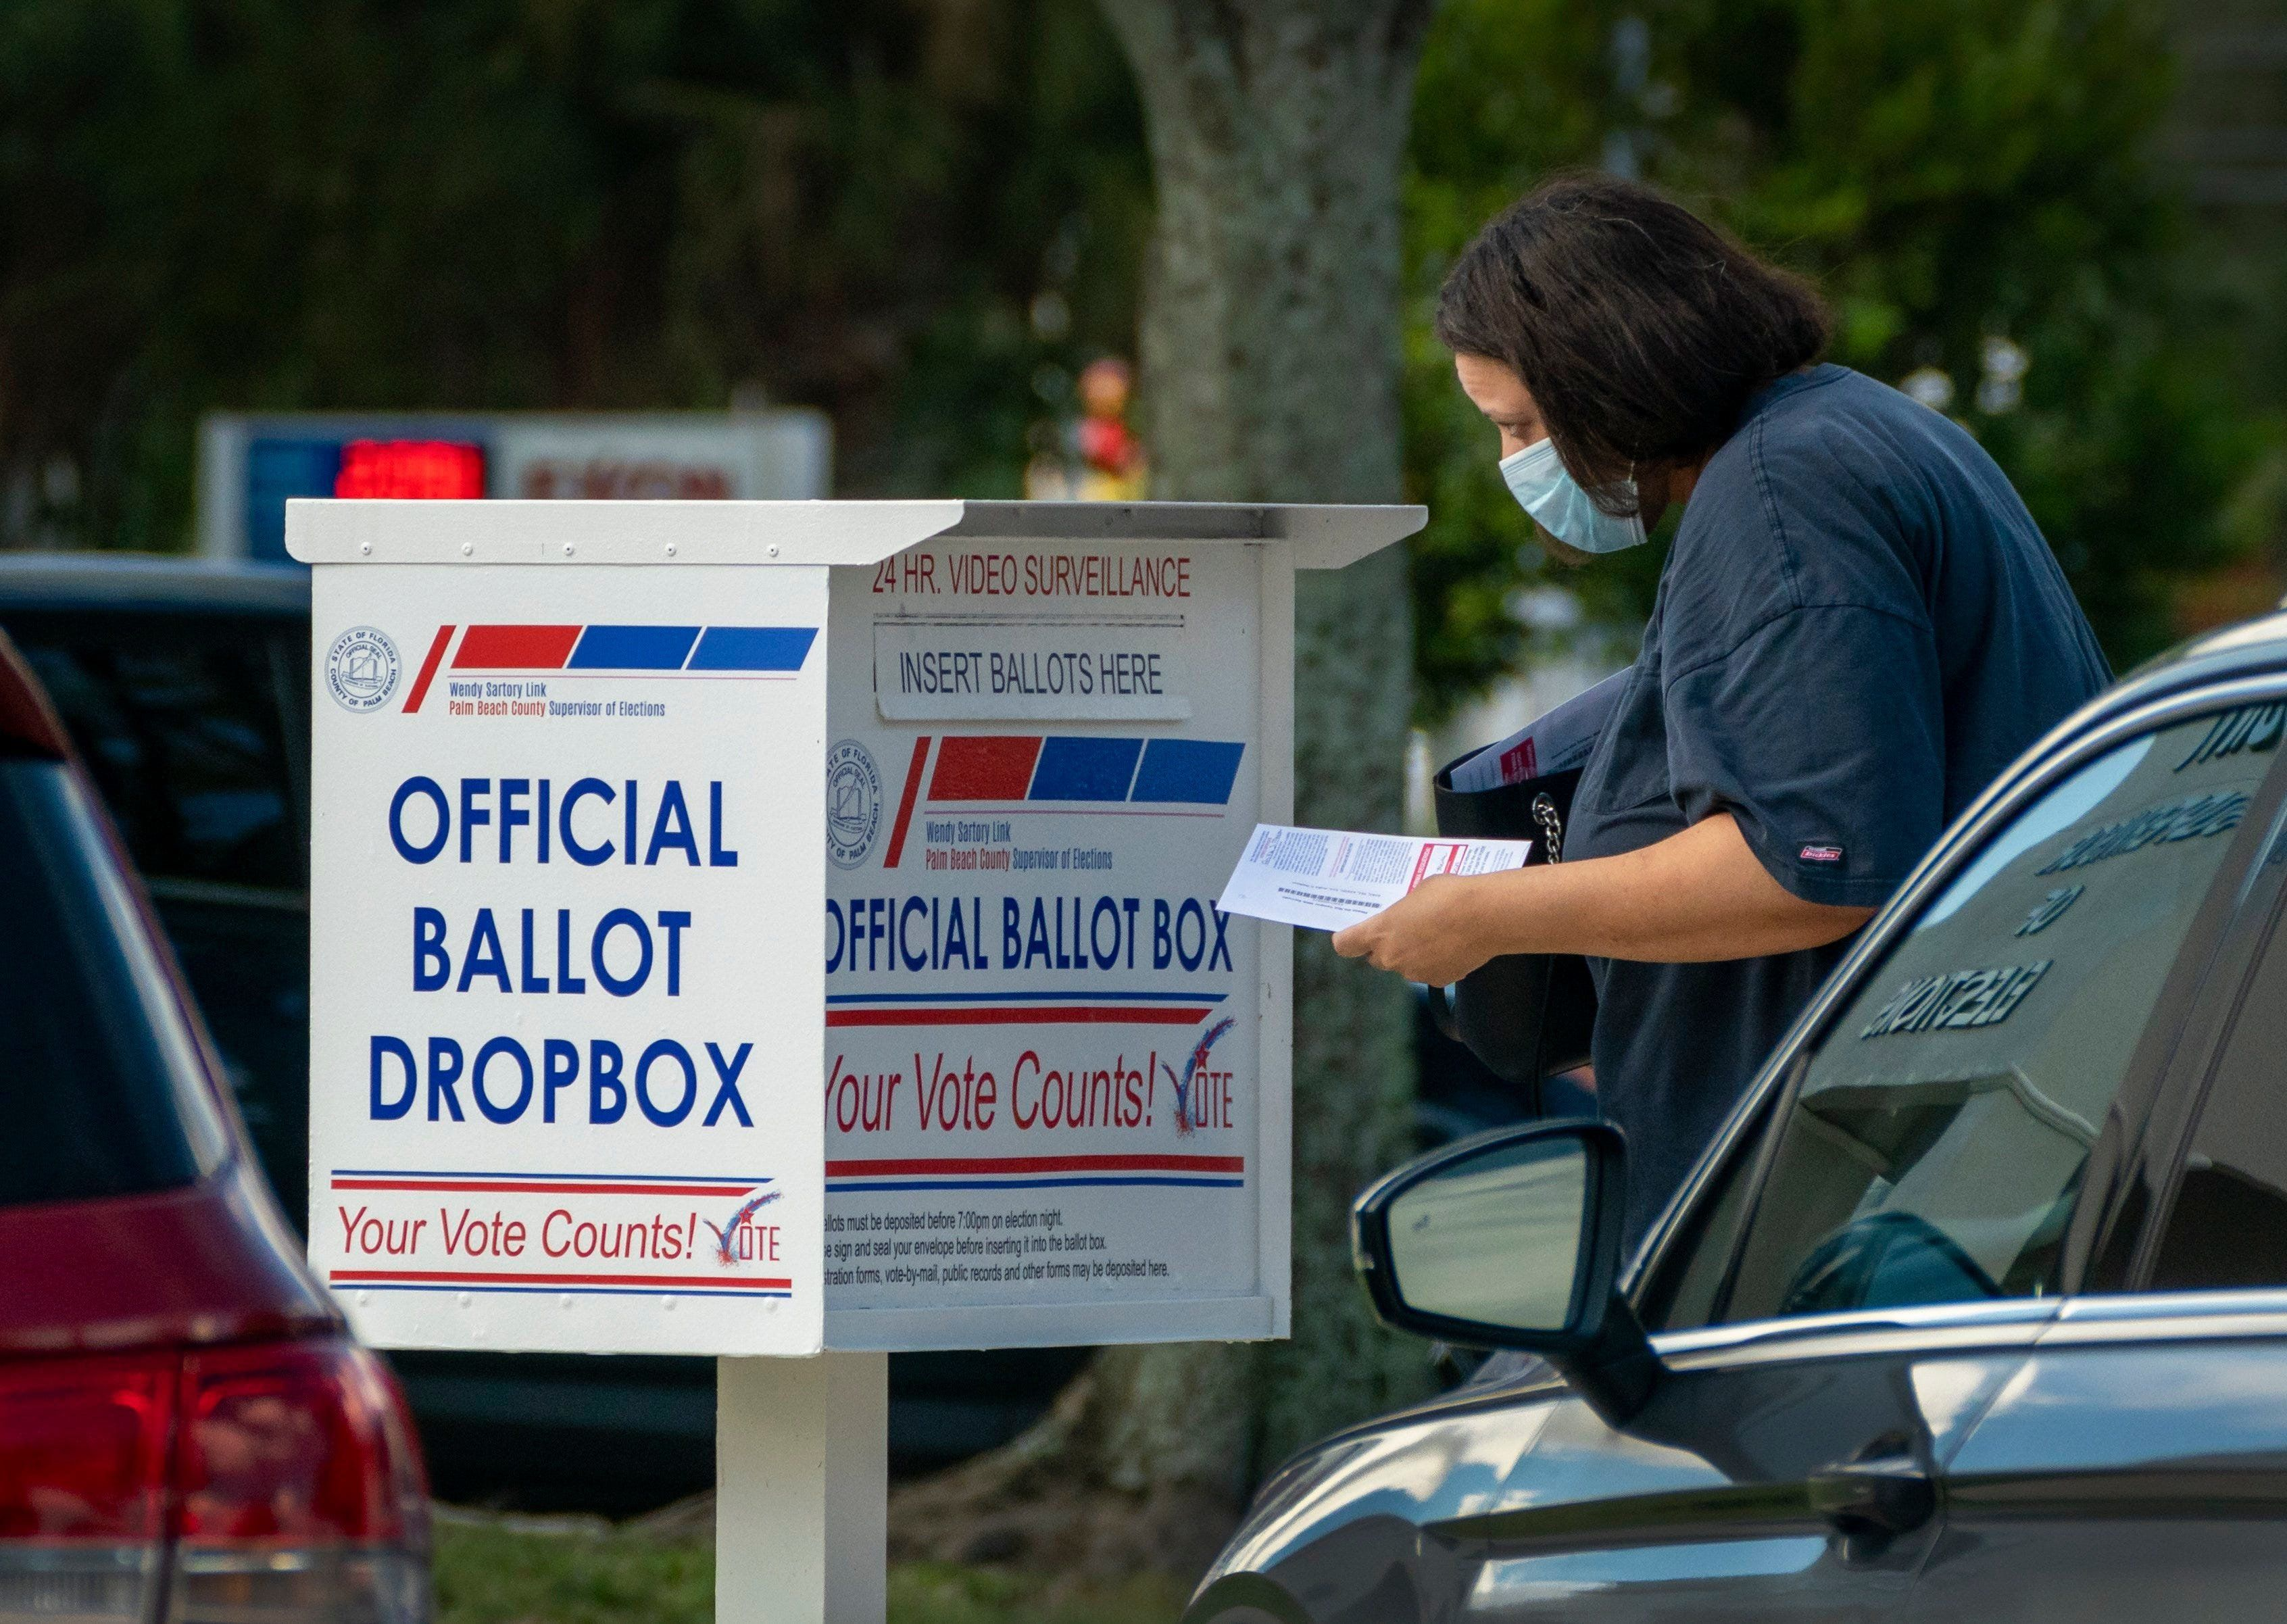 A voter drops off her vote by mail ballot at the Supervisor of Elections office on election day in West Palm Beach, Florida on August 18, 2020.